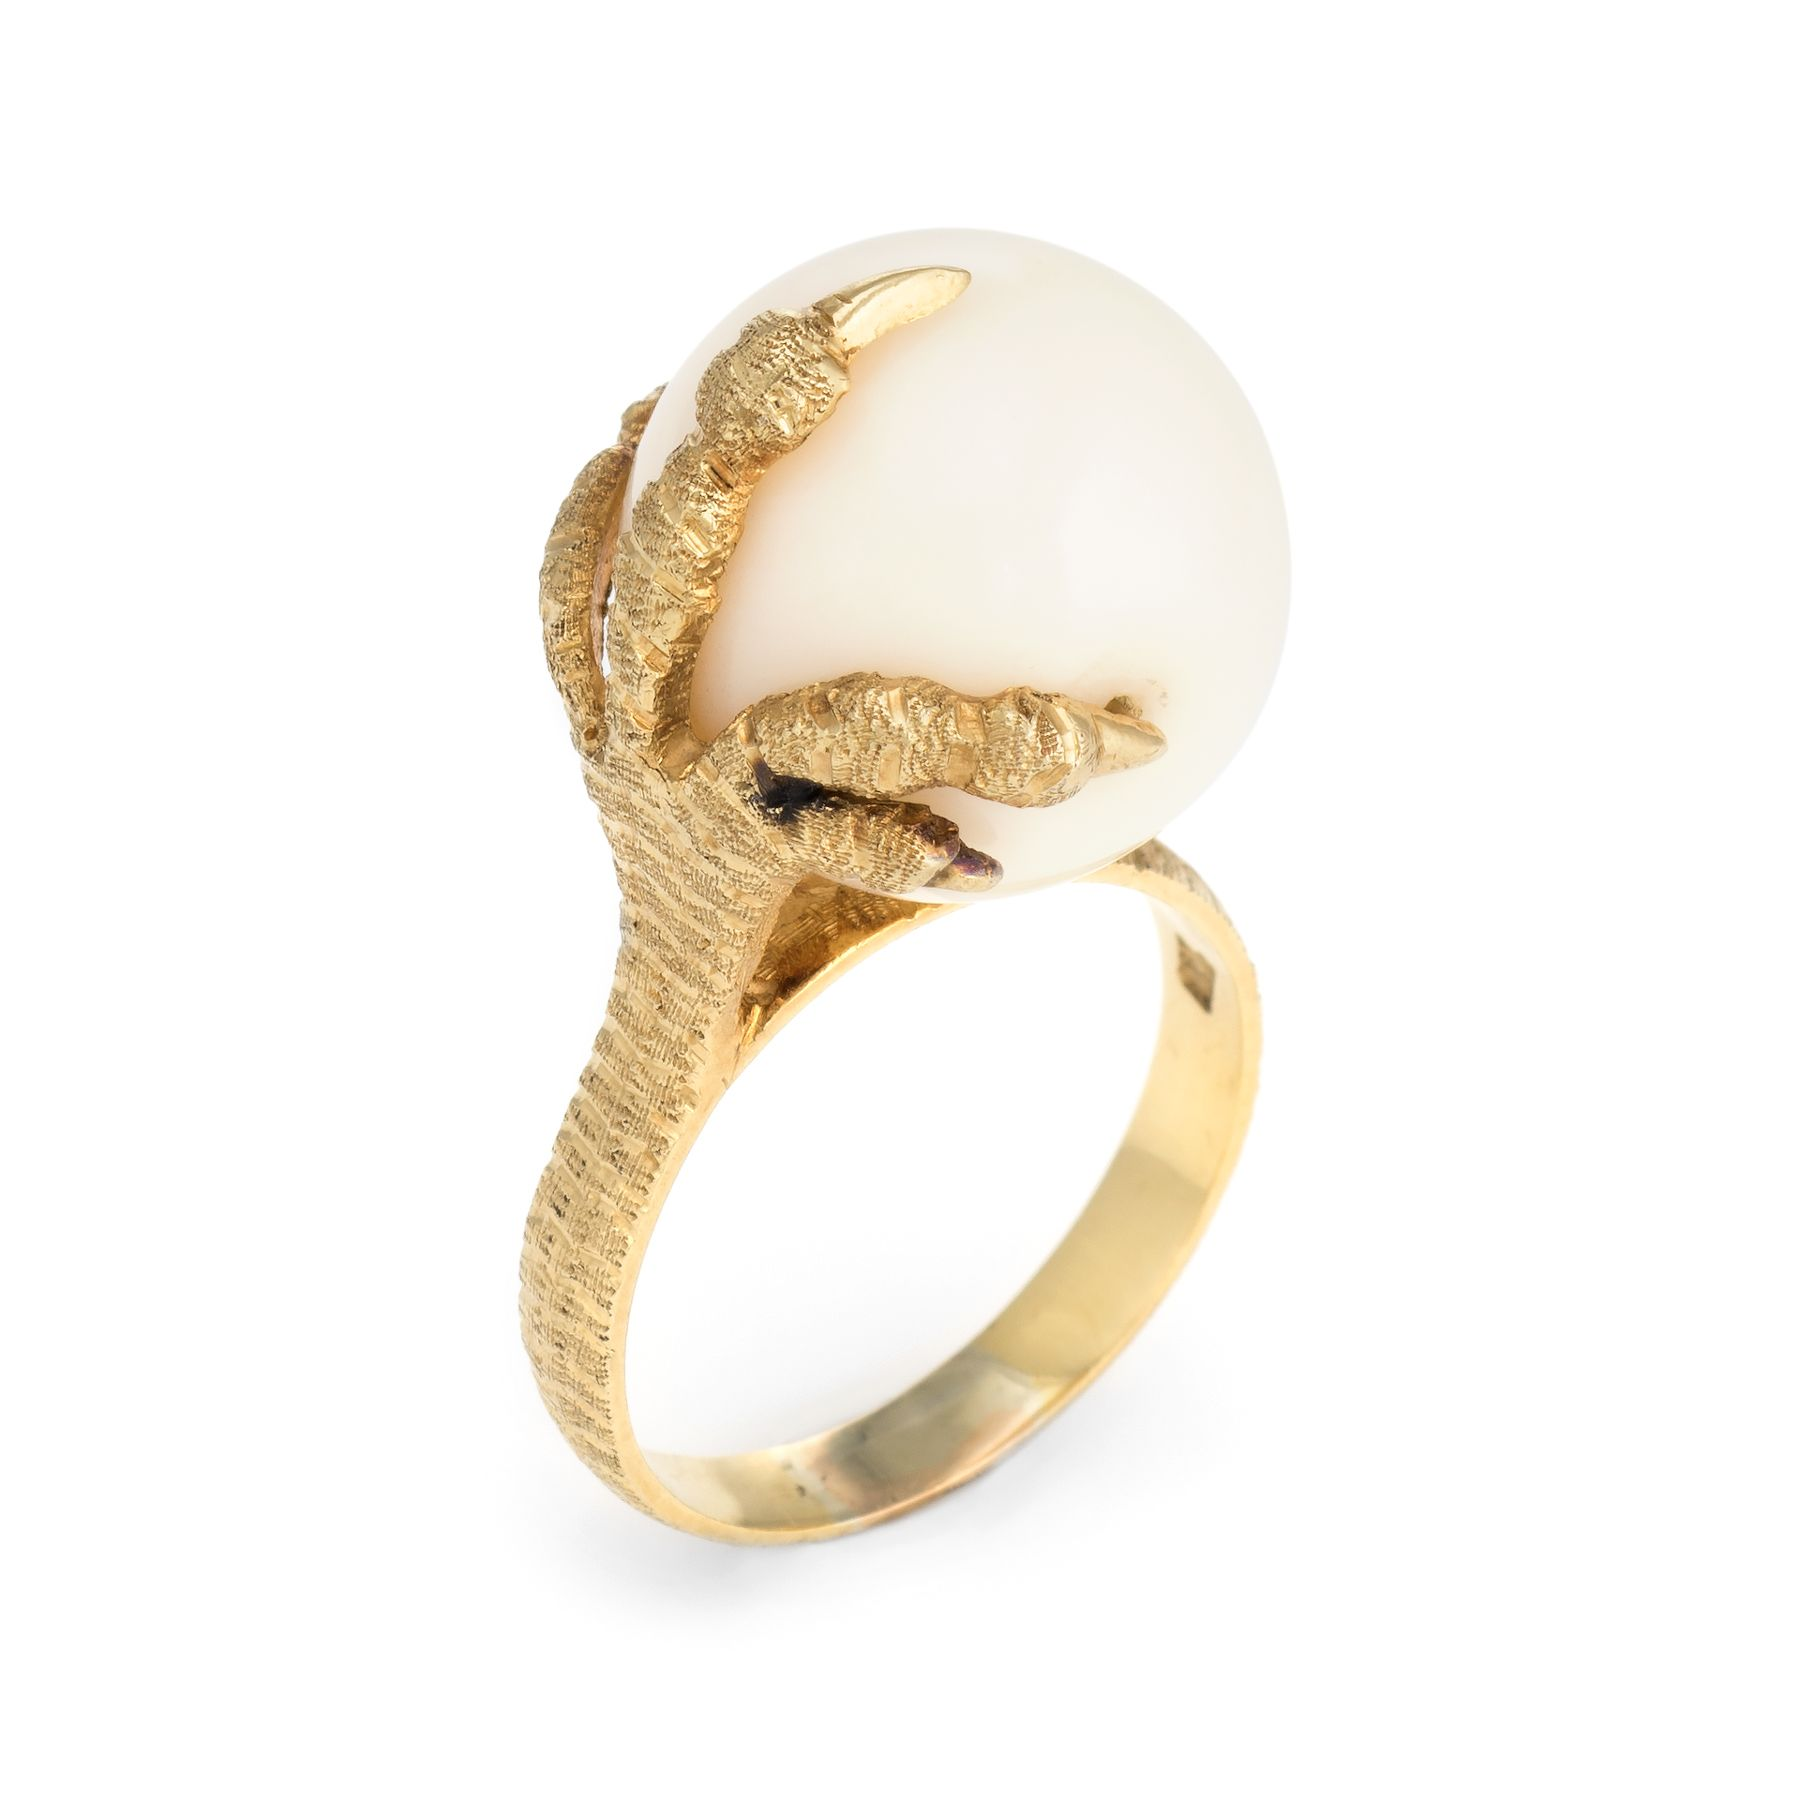 03f1389d39 Vintage Dragon Claw Ring 18 Karat Yellow Gold Coral Orb Estate Fine Jewelry  Sz 8 #dragon #rings #vintagejewelry